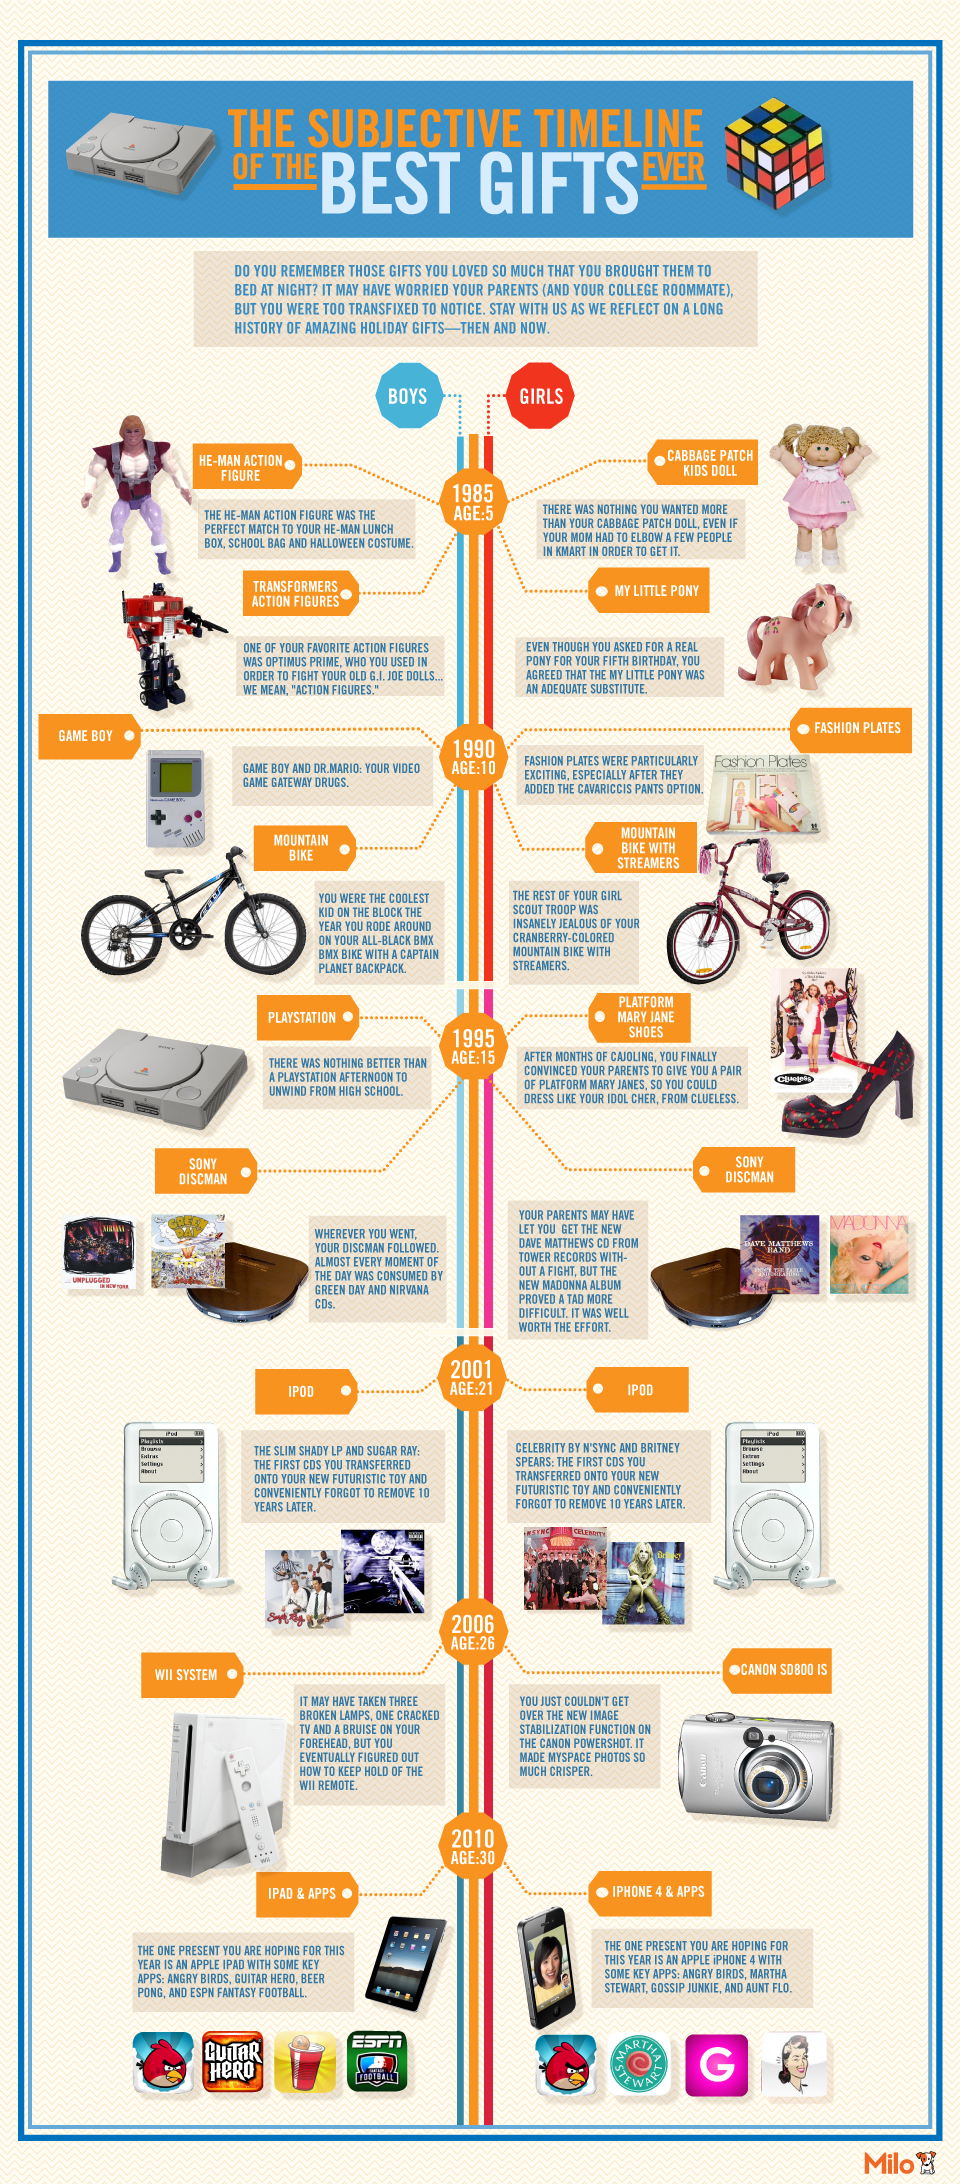 the subjective timeline of the best gifts ever [infographic